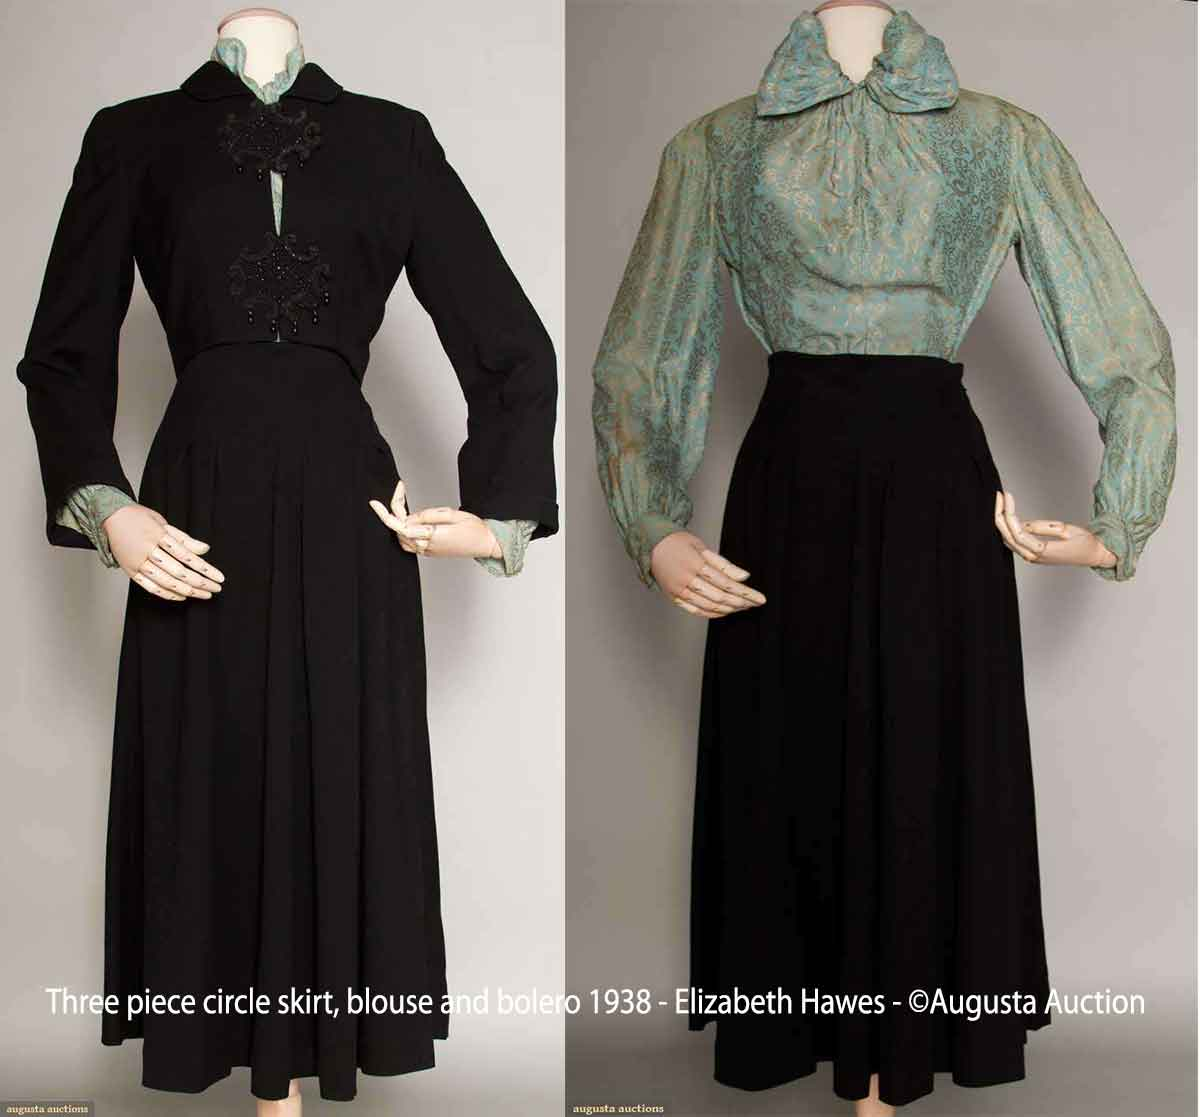 Three-piece--circle-skirt-blouse-and-bolero-1938---Elizabeth-Hawes---augusta-auction